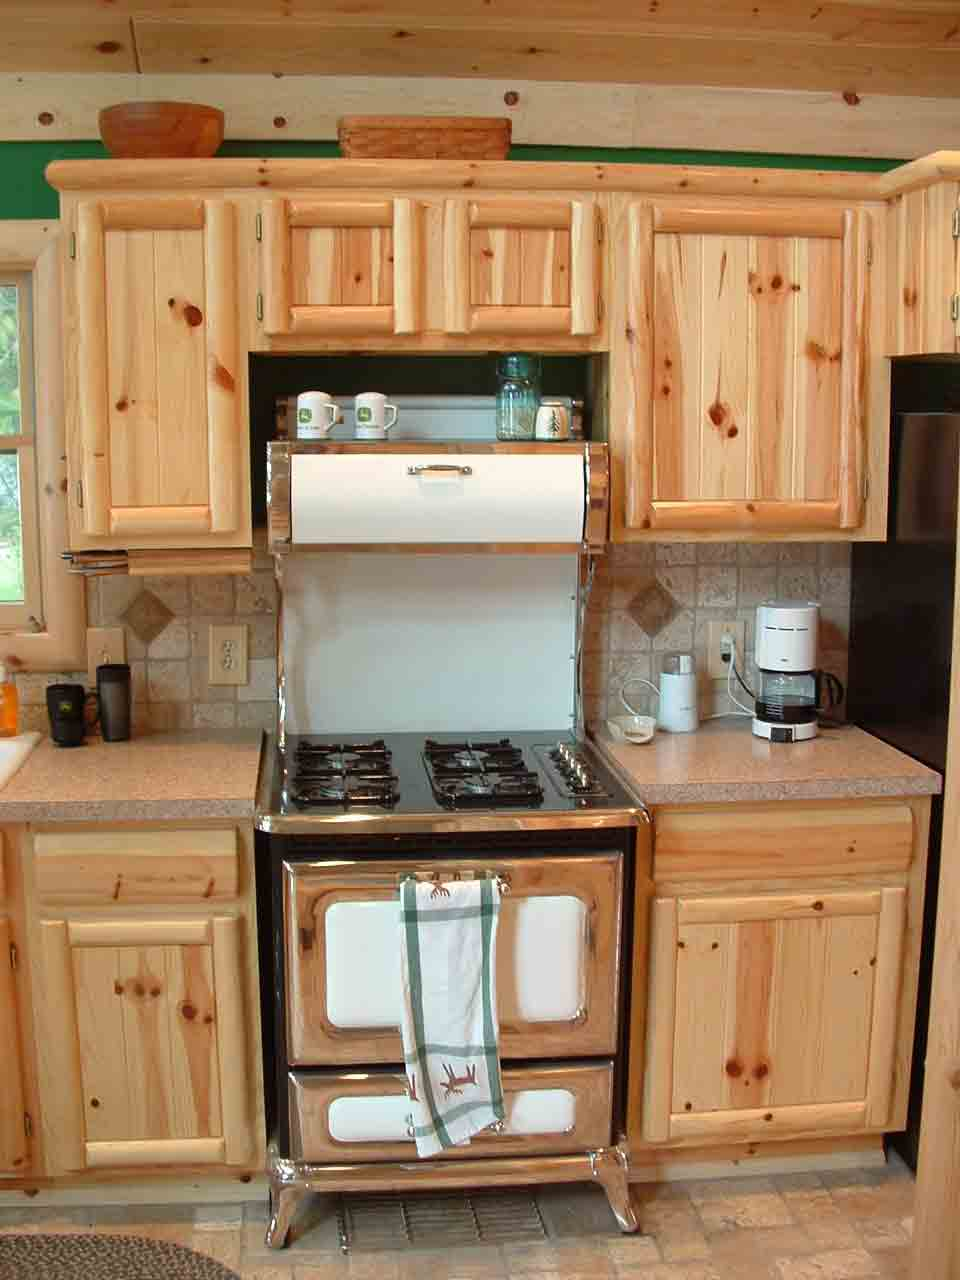 Cute knotty pine kitchen cabinets 07knotty_pine_cabinetry clovaih